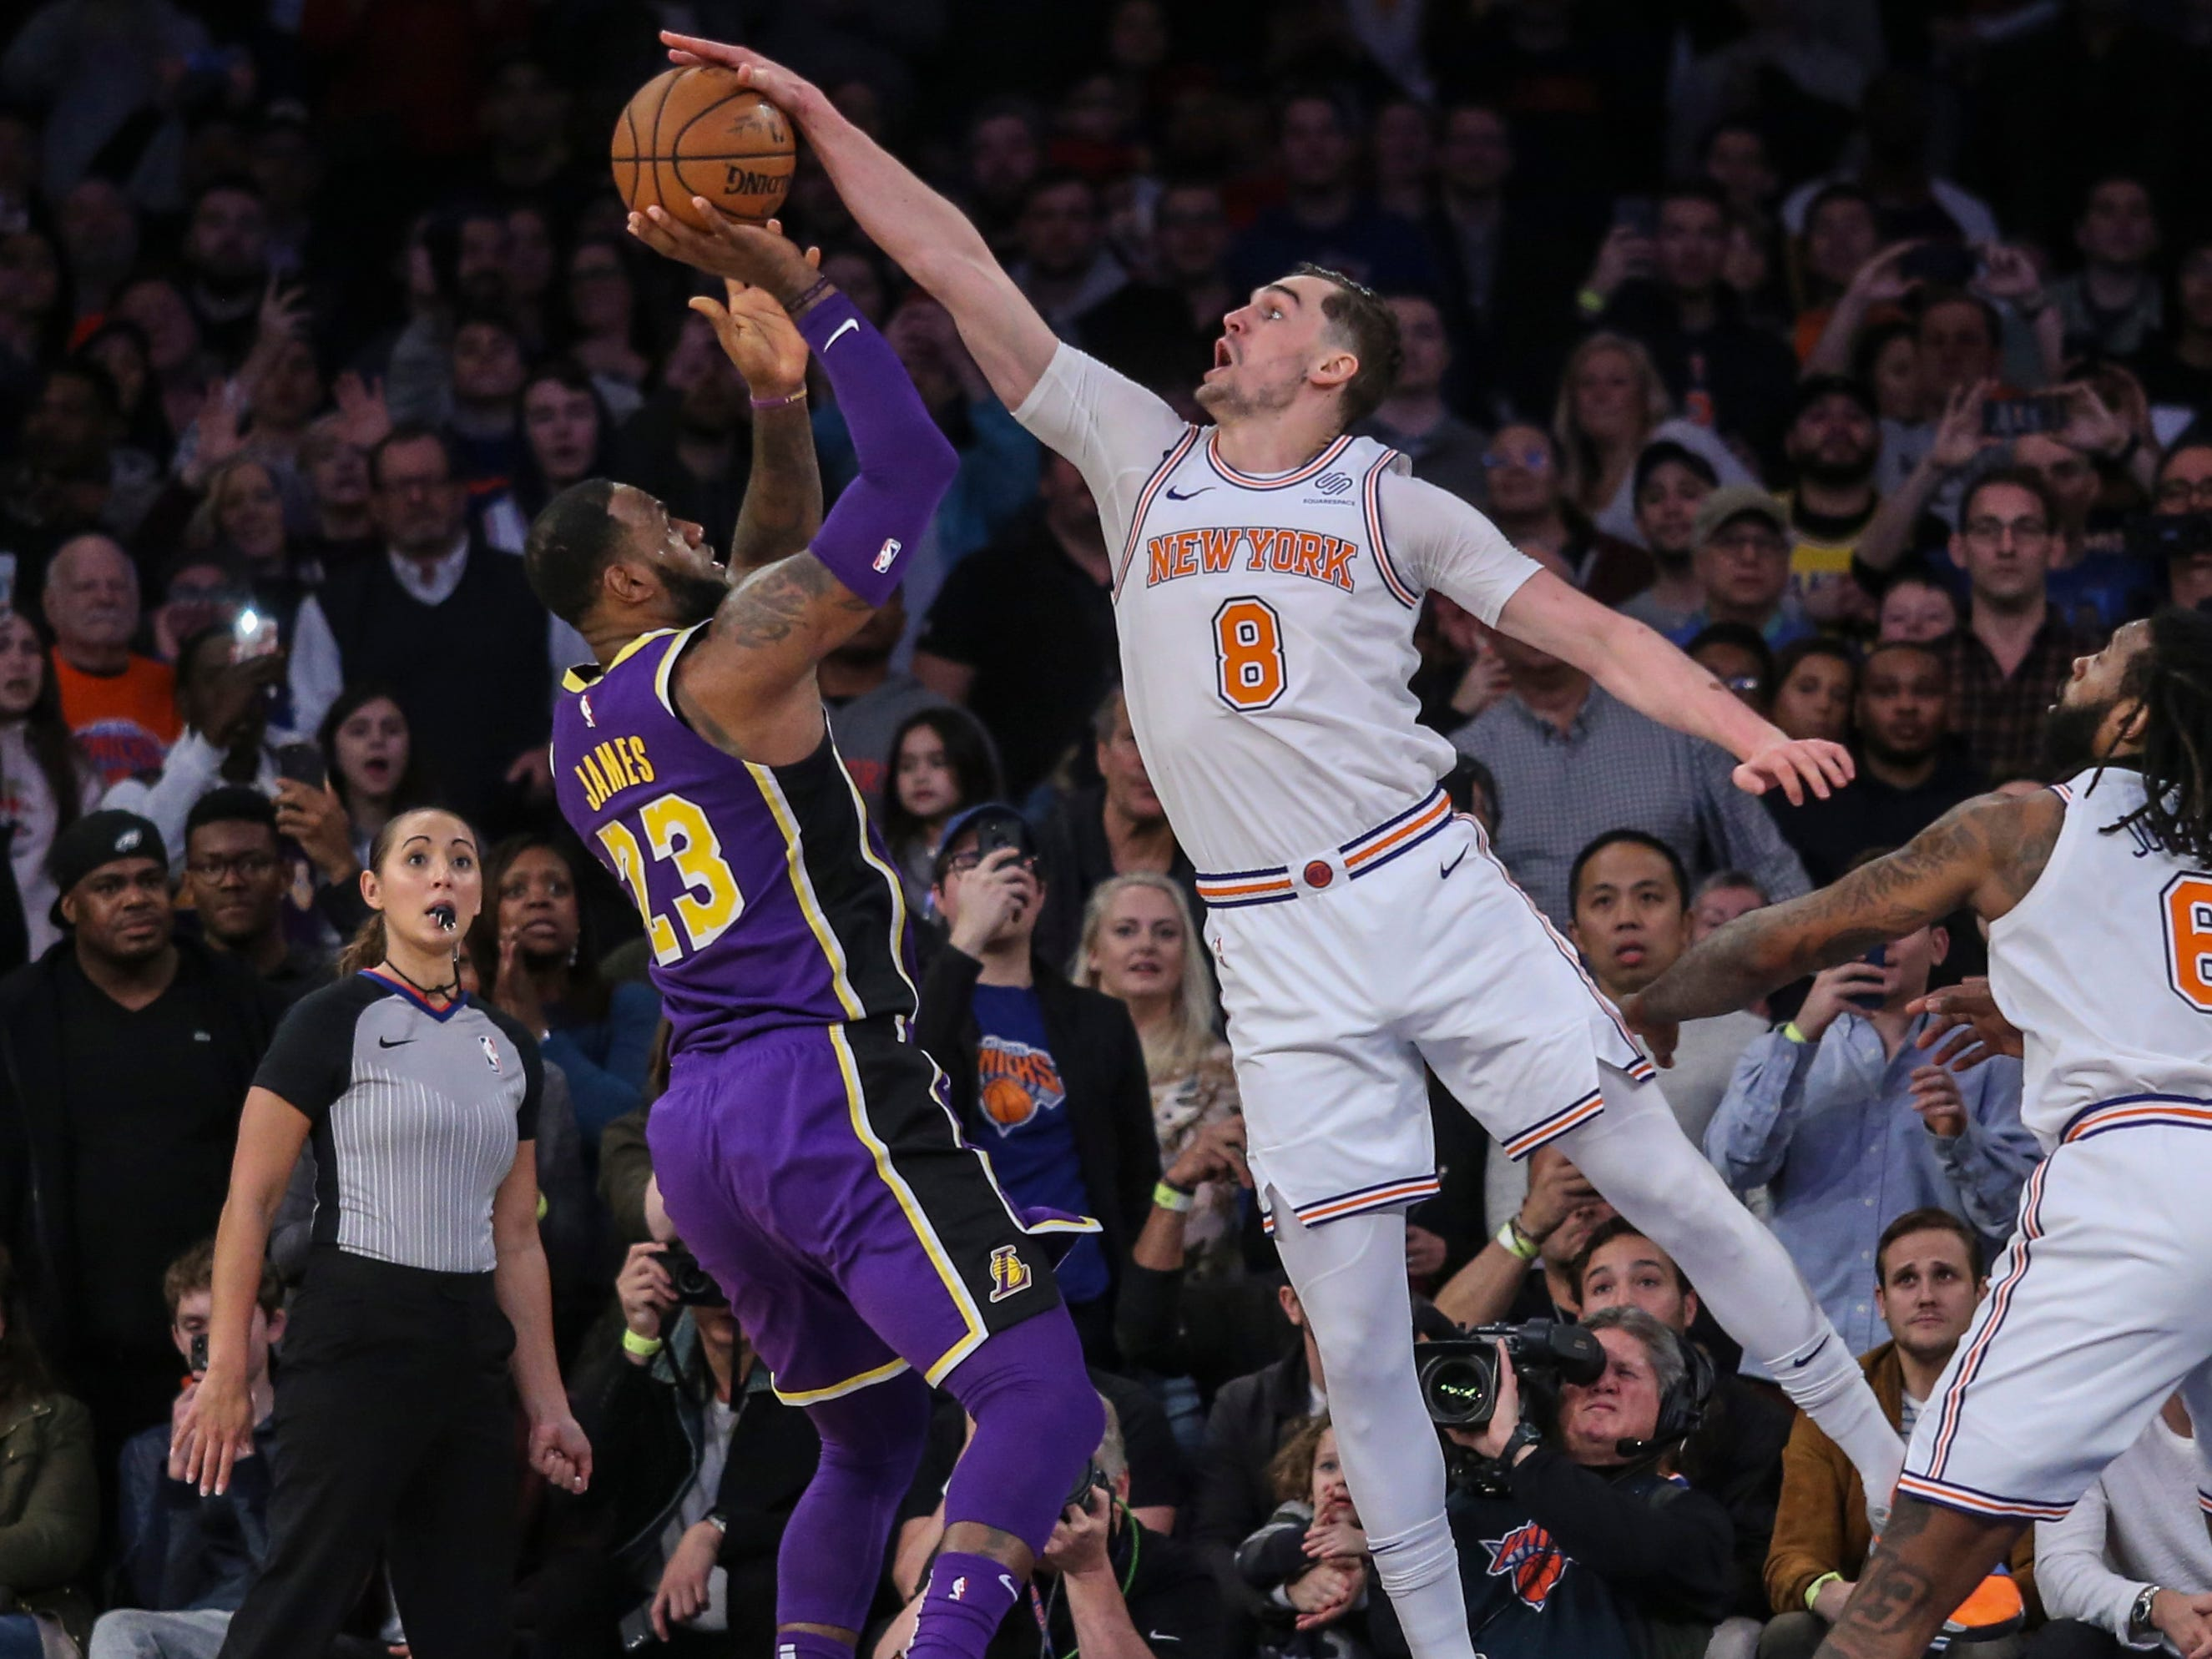 March 17, 2019: James has his last-second shot blocked by Mario Hezonja to seal a one-point win for the Knicks in New York.